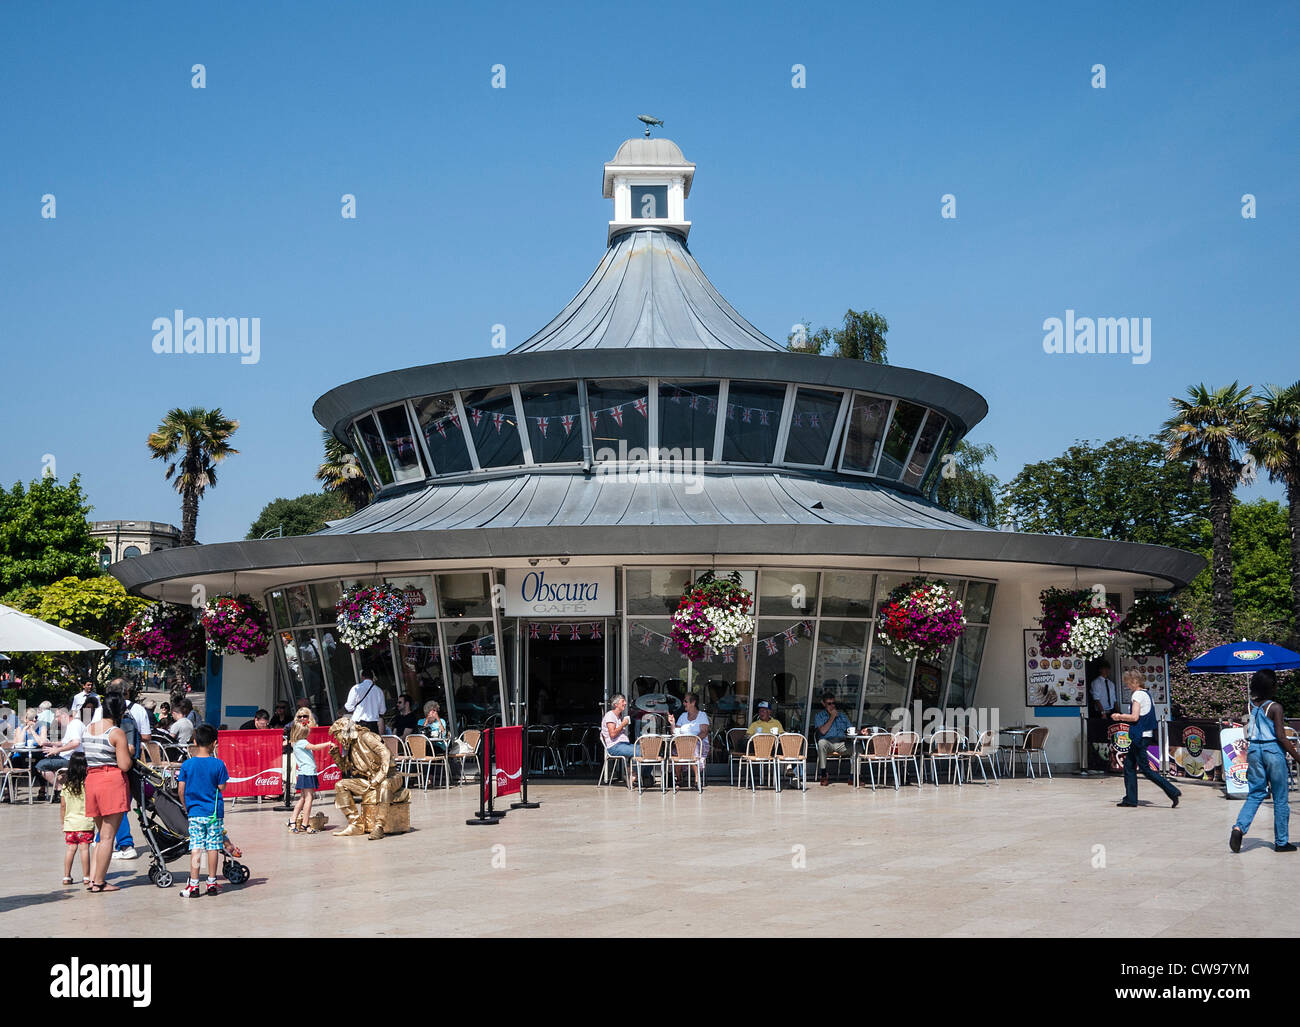 Bournemouth Square, Obscure Cafe, people walking and sitting, Dorset, England, UK. - Stock Image